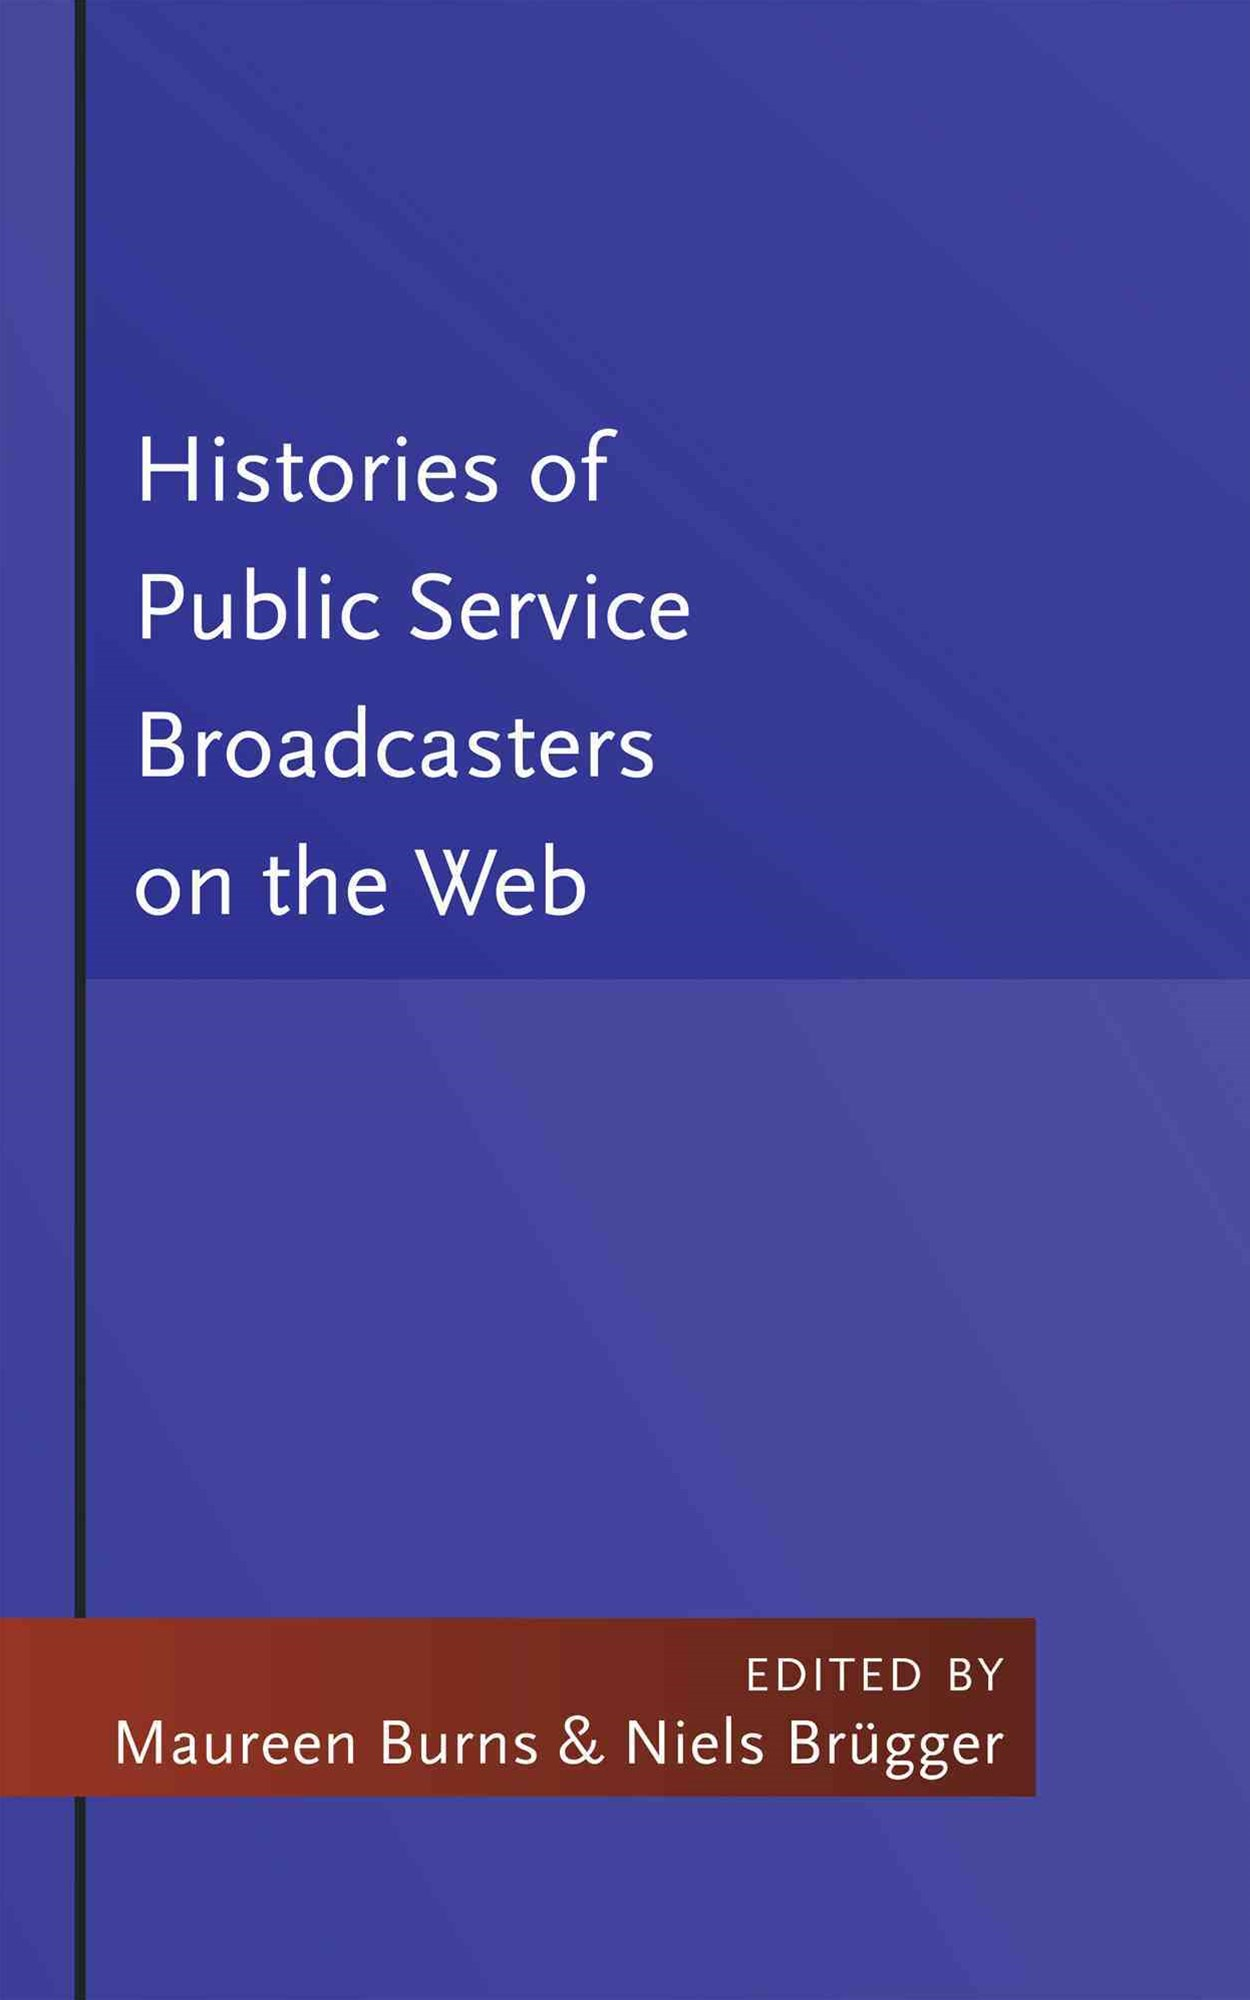 Histories of Public Service Broadcasters on the Web